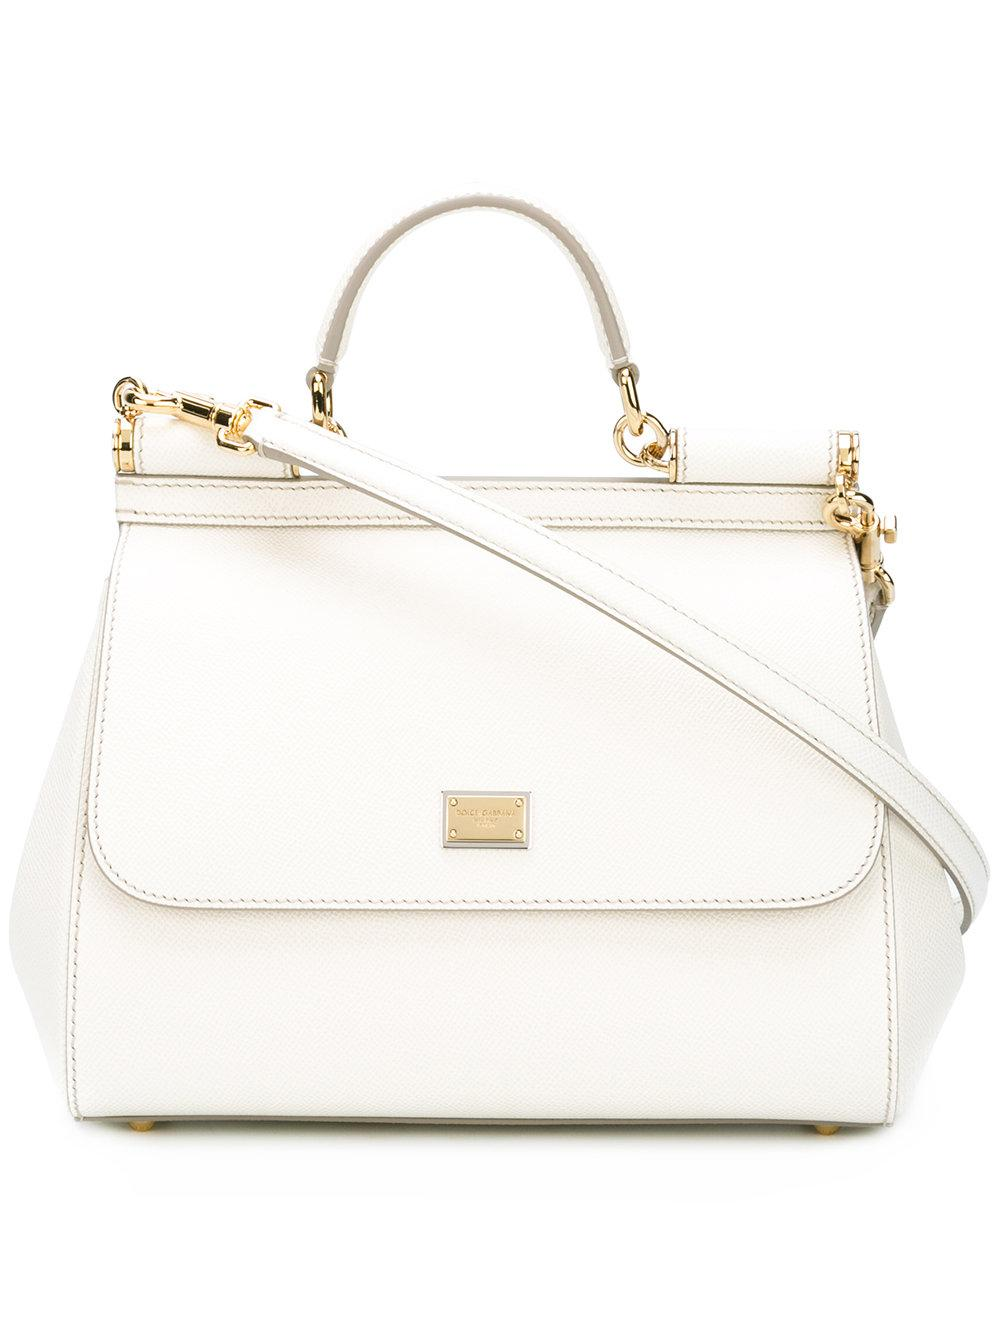 9d45c76499 Dolce   Gabbana Sicily Dauphine Leather Bag in White - Lyst